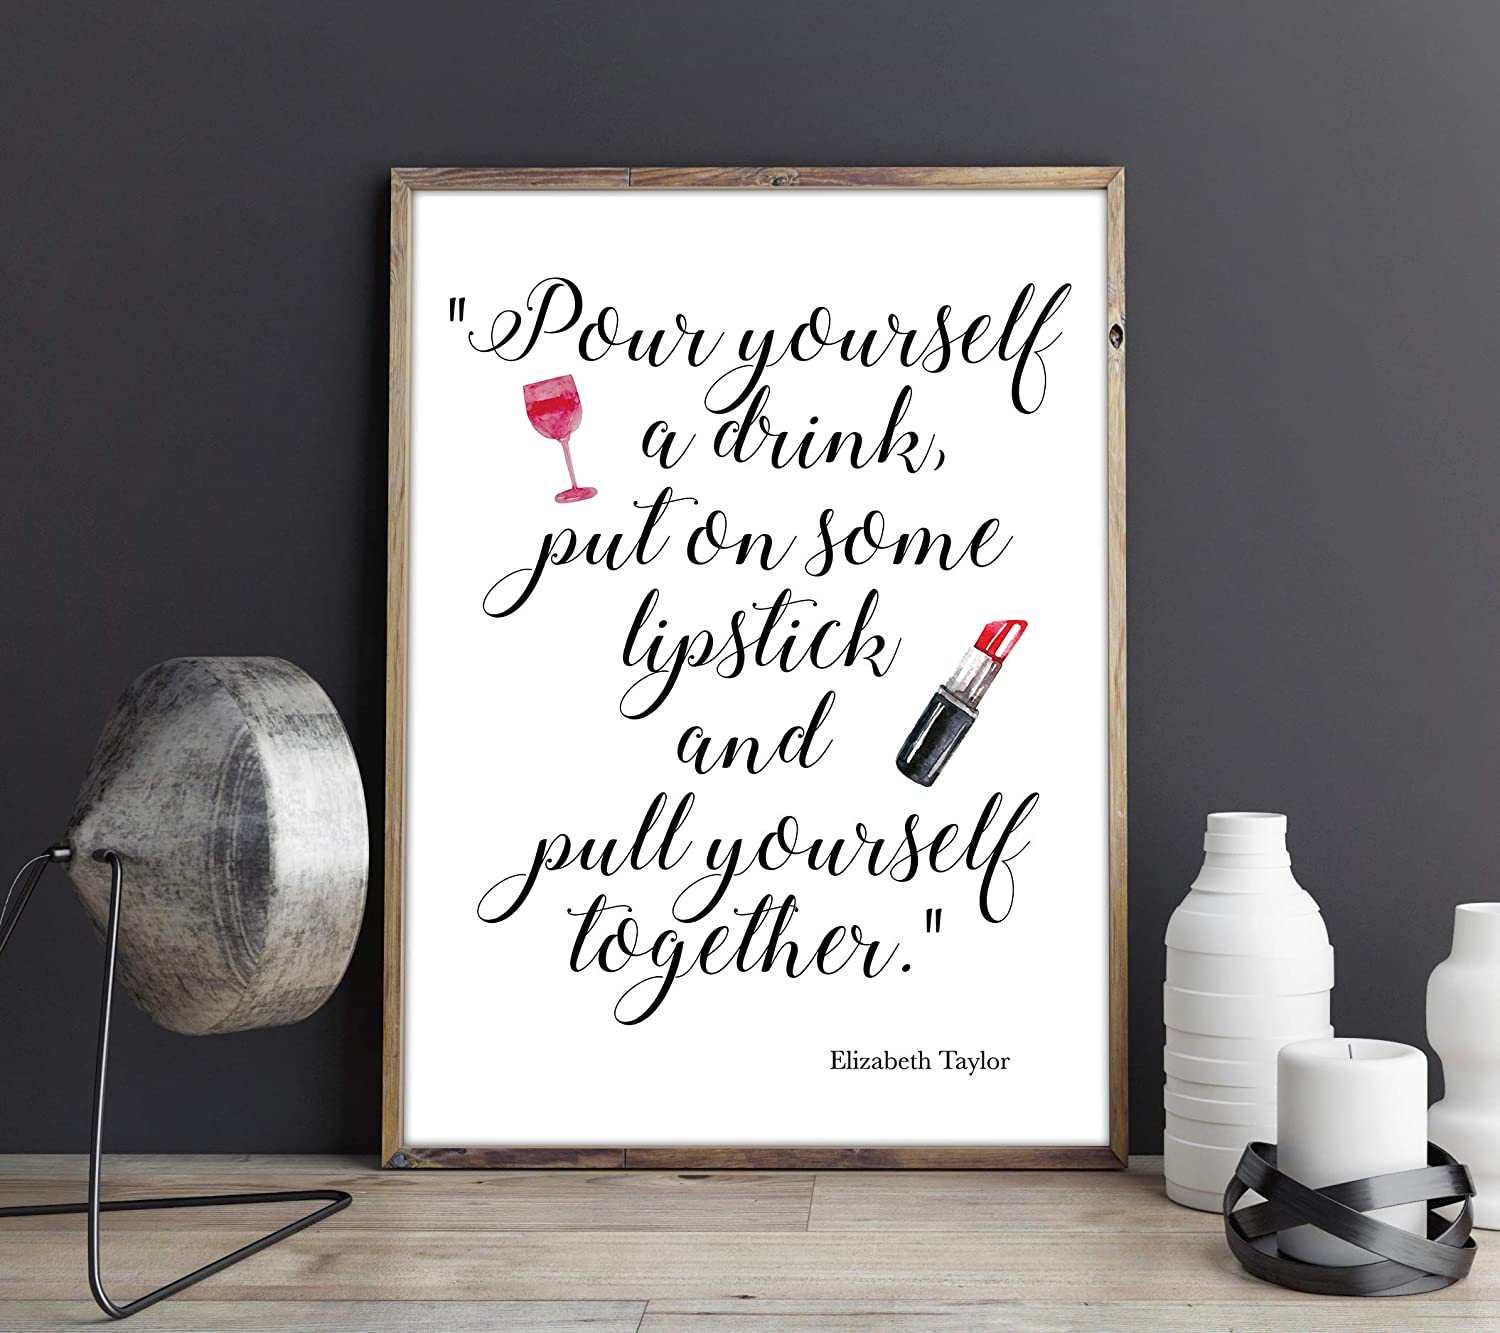 Elizabeth Taylor Quote Print put on some lipstick Pour yourself a drink and pull yourself together